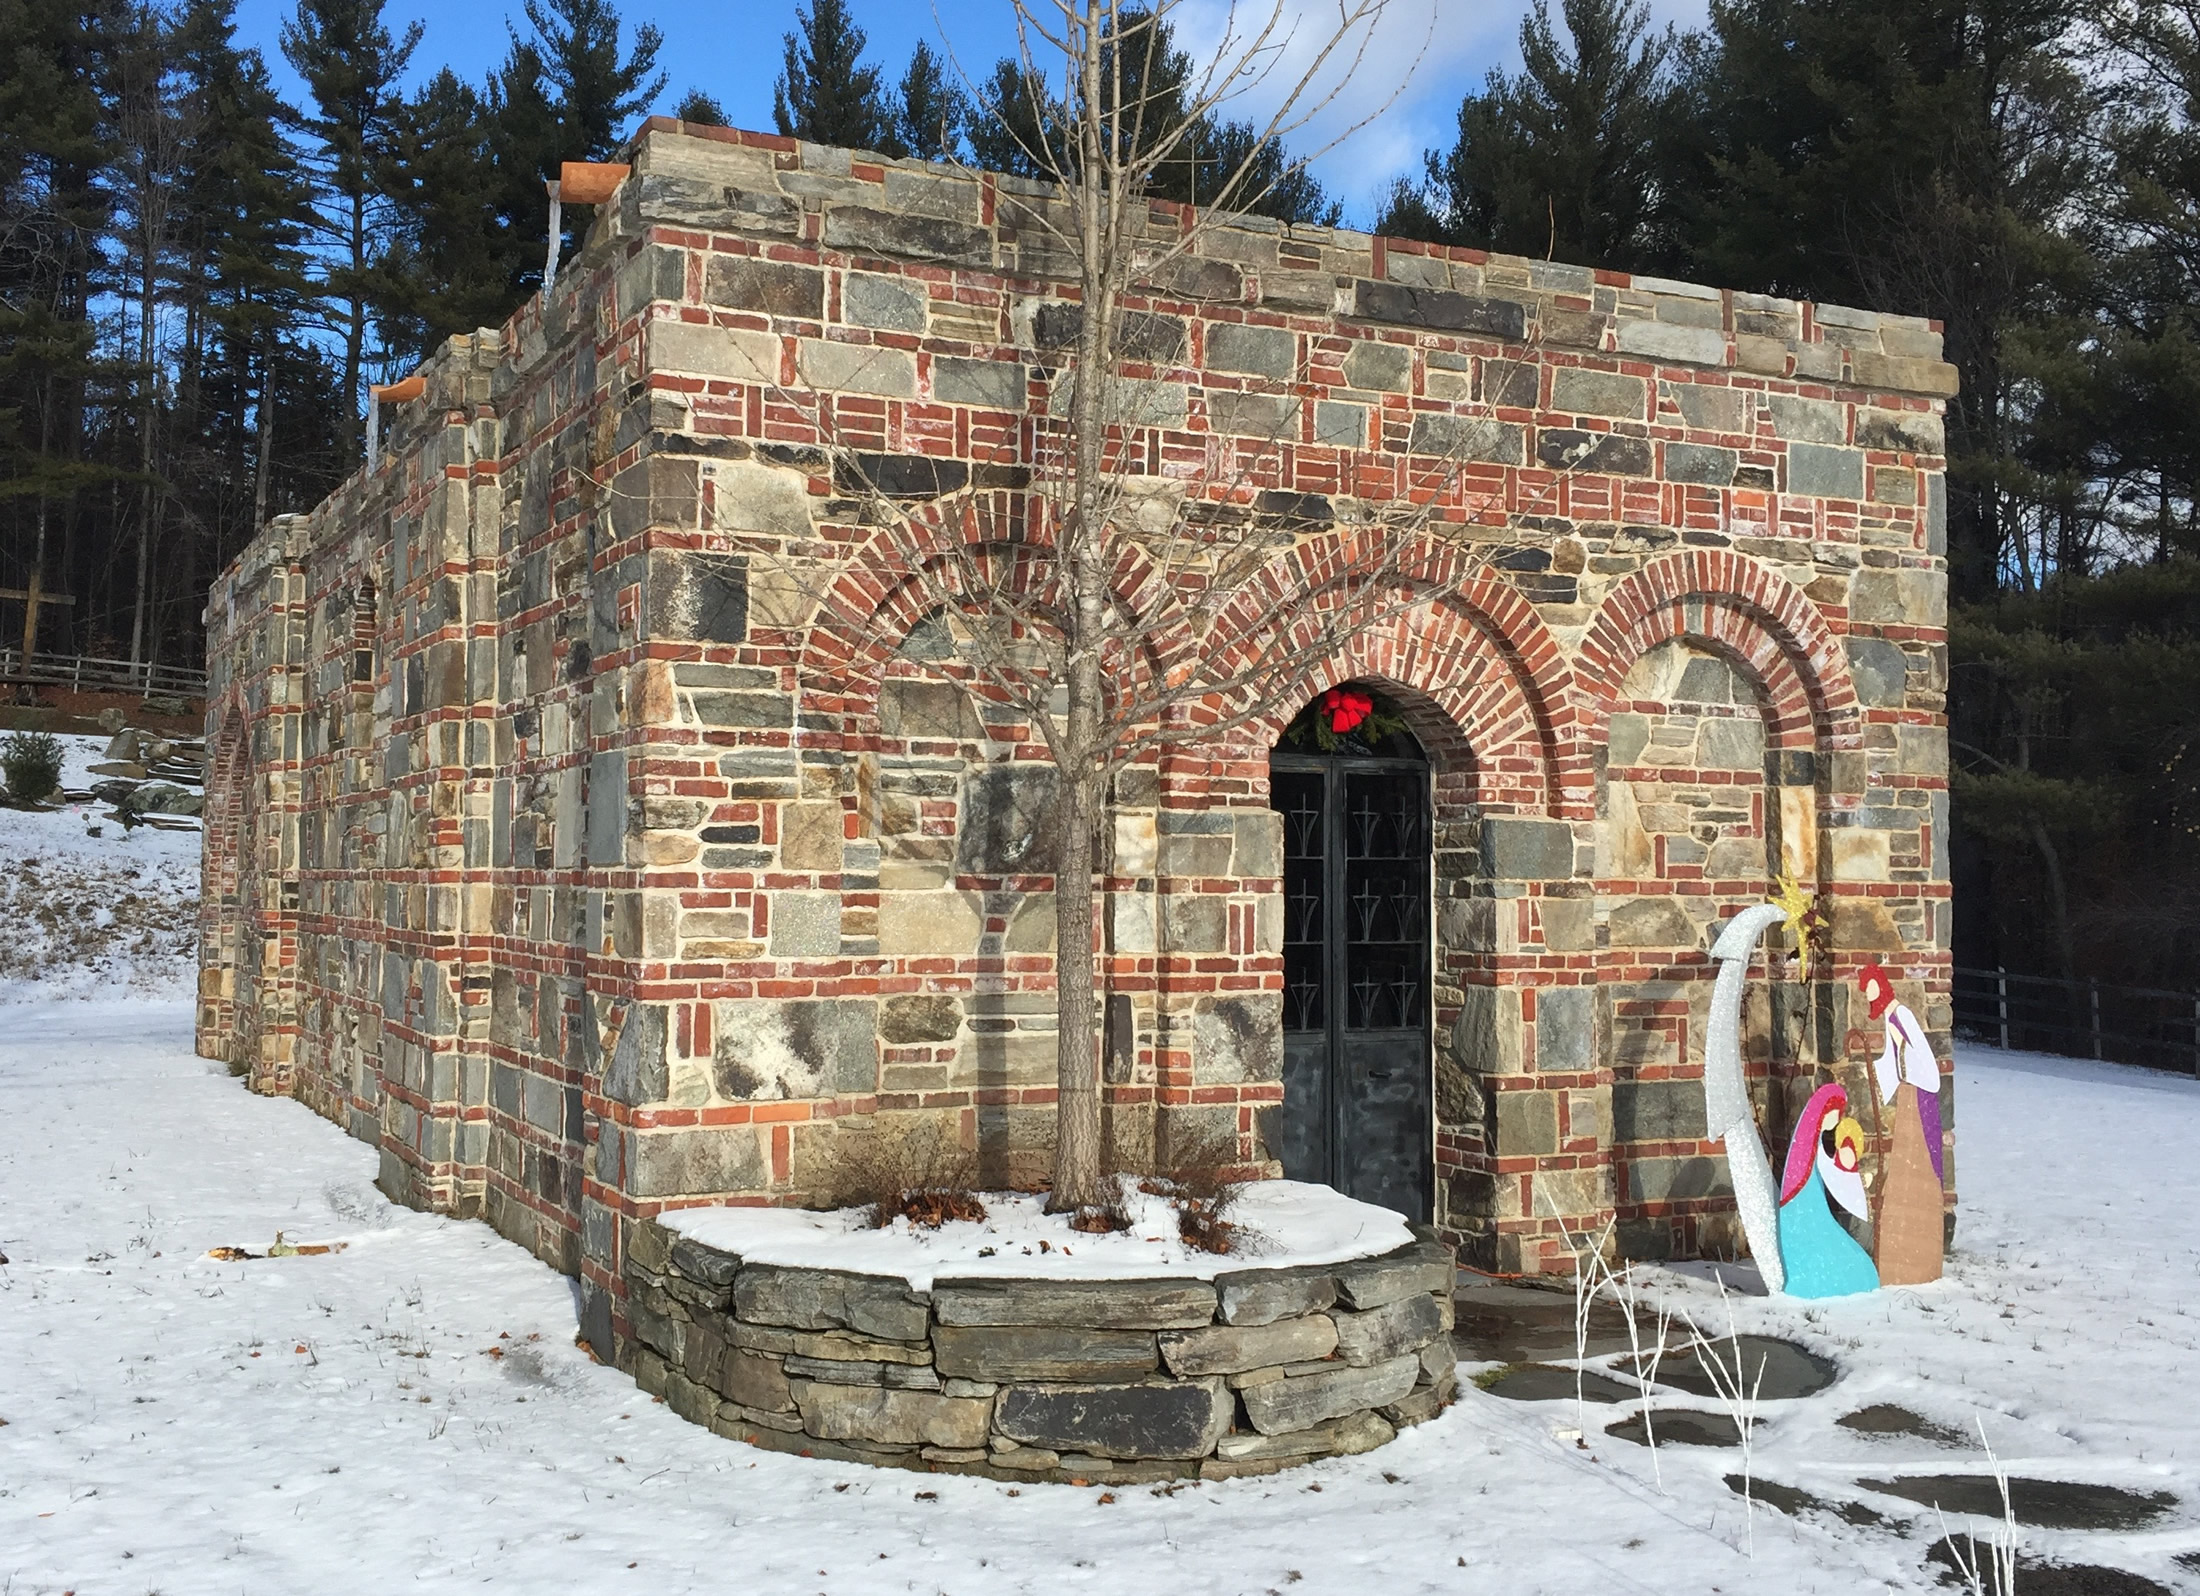 Image 17. Our Lady of Ephesus House of Prayer, Jamaica, Vermont, USA, 1347 foot elevation. Photo by author.